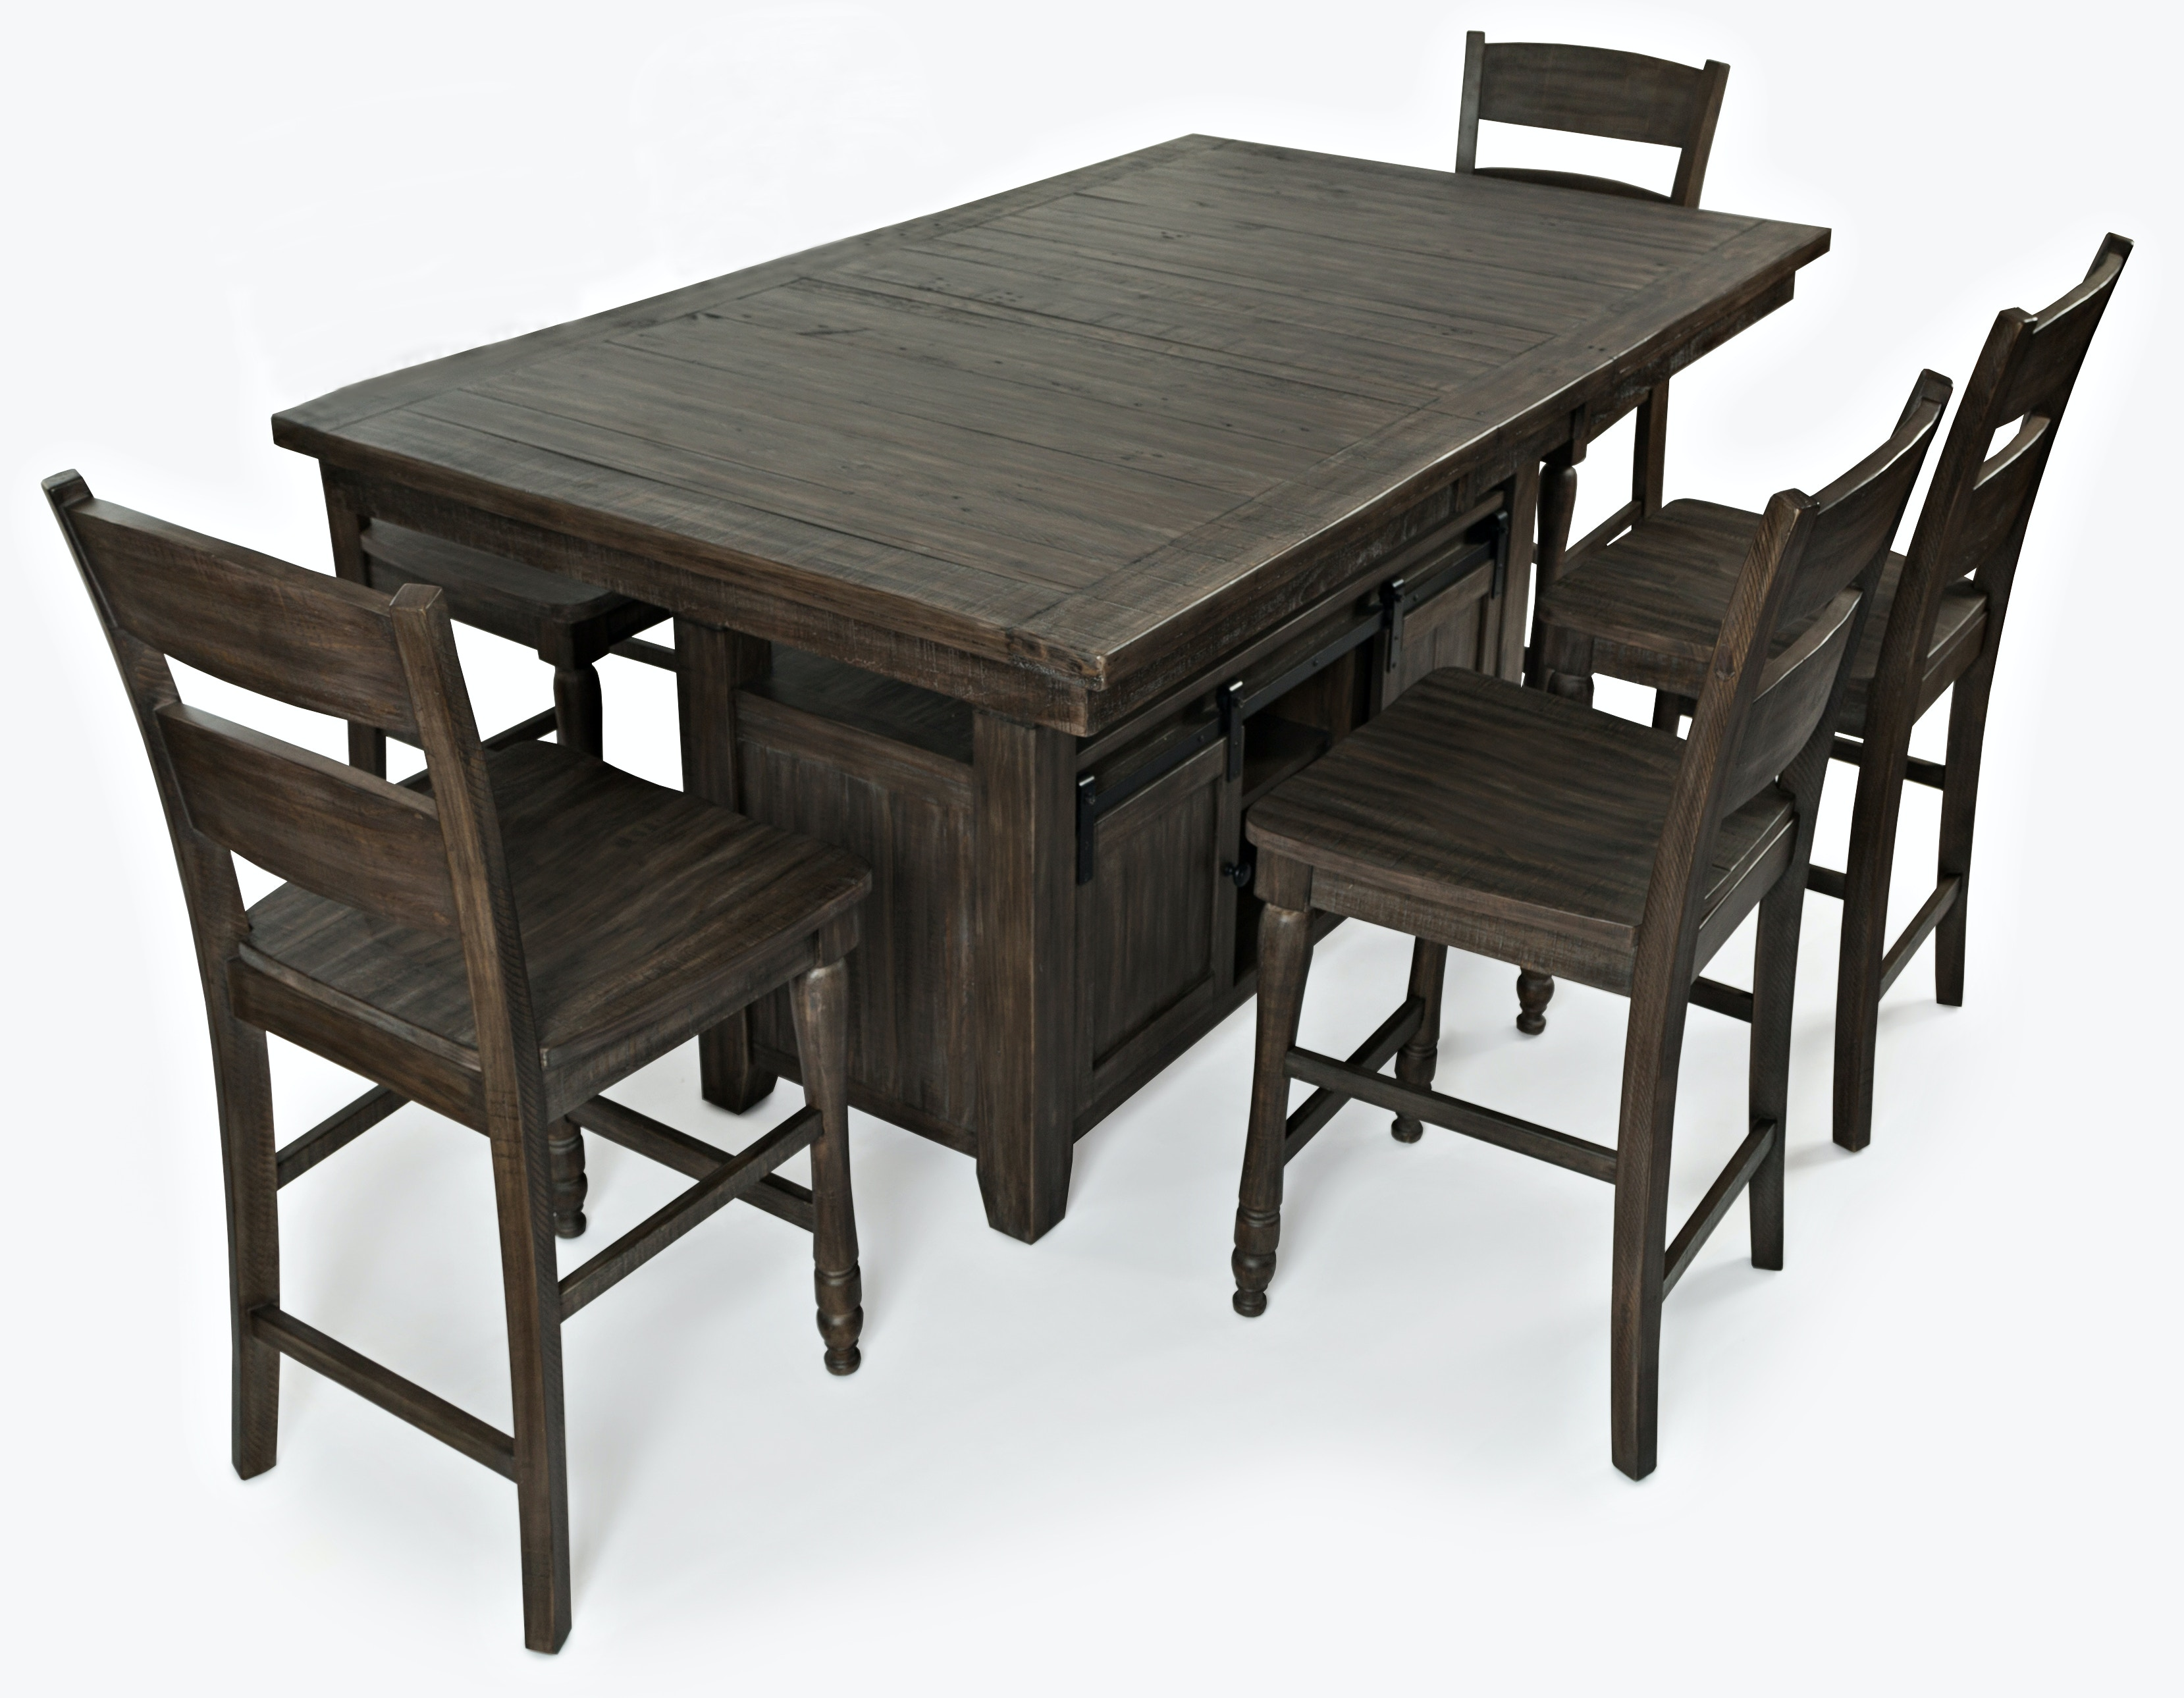 Ginger 5 Piece Counter Height Barnwood Dining Set GP:D581